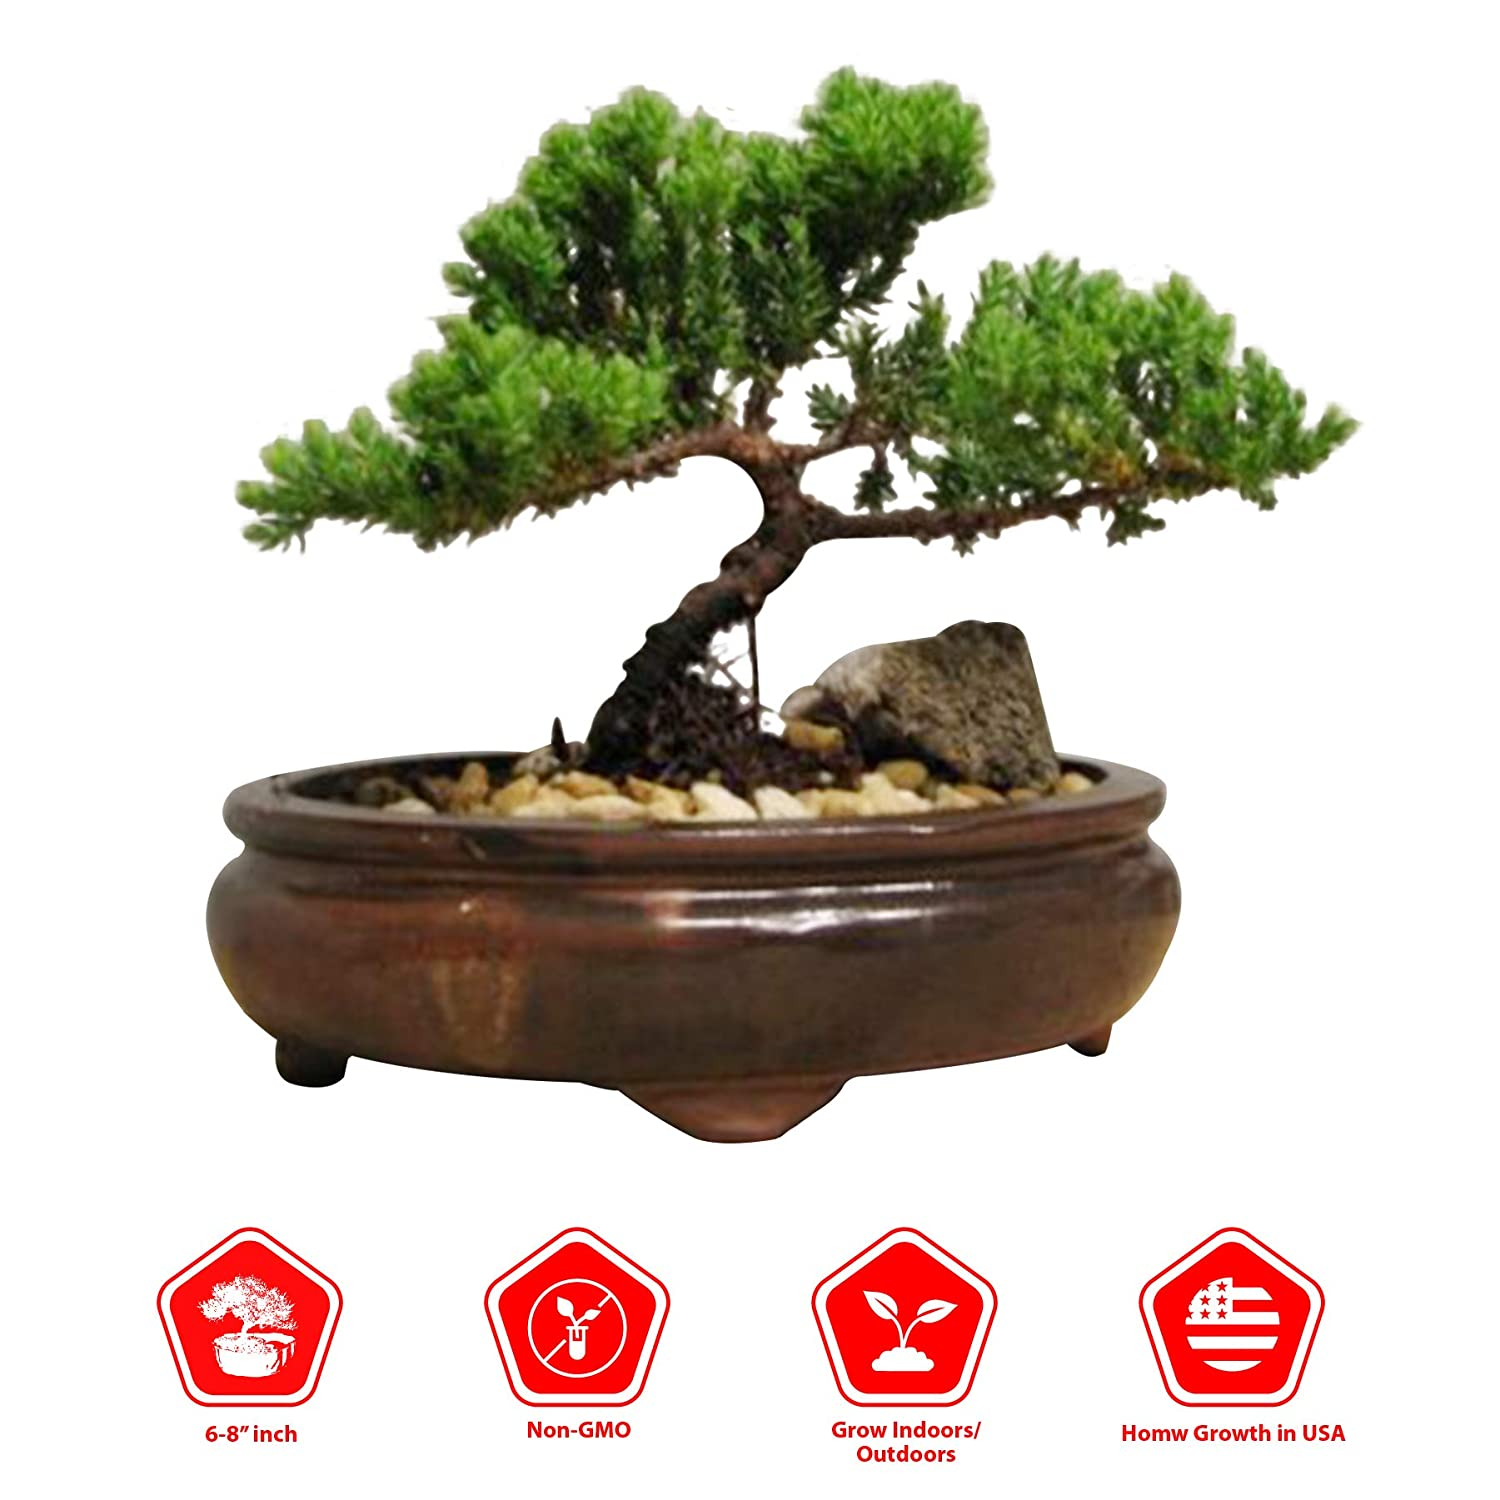 9GreenBox Bonsai Juniper Tree - Japanese Art Live House Plants for Indoor and Outdoor Garden - Dwarf Trees in Container Pot for Home and Office Decor - Best Gift for Mothers Day, Christmas - 4 Pounds 71hBzTnzthL